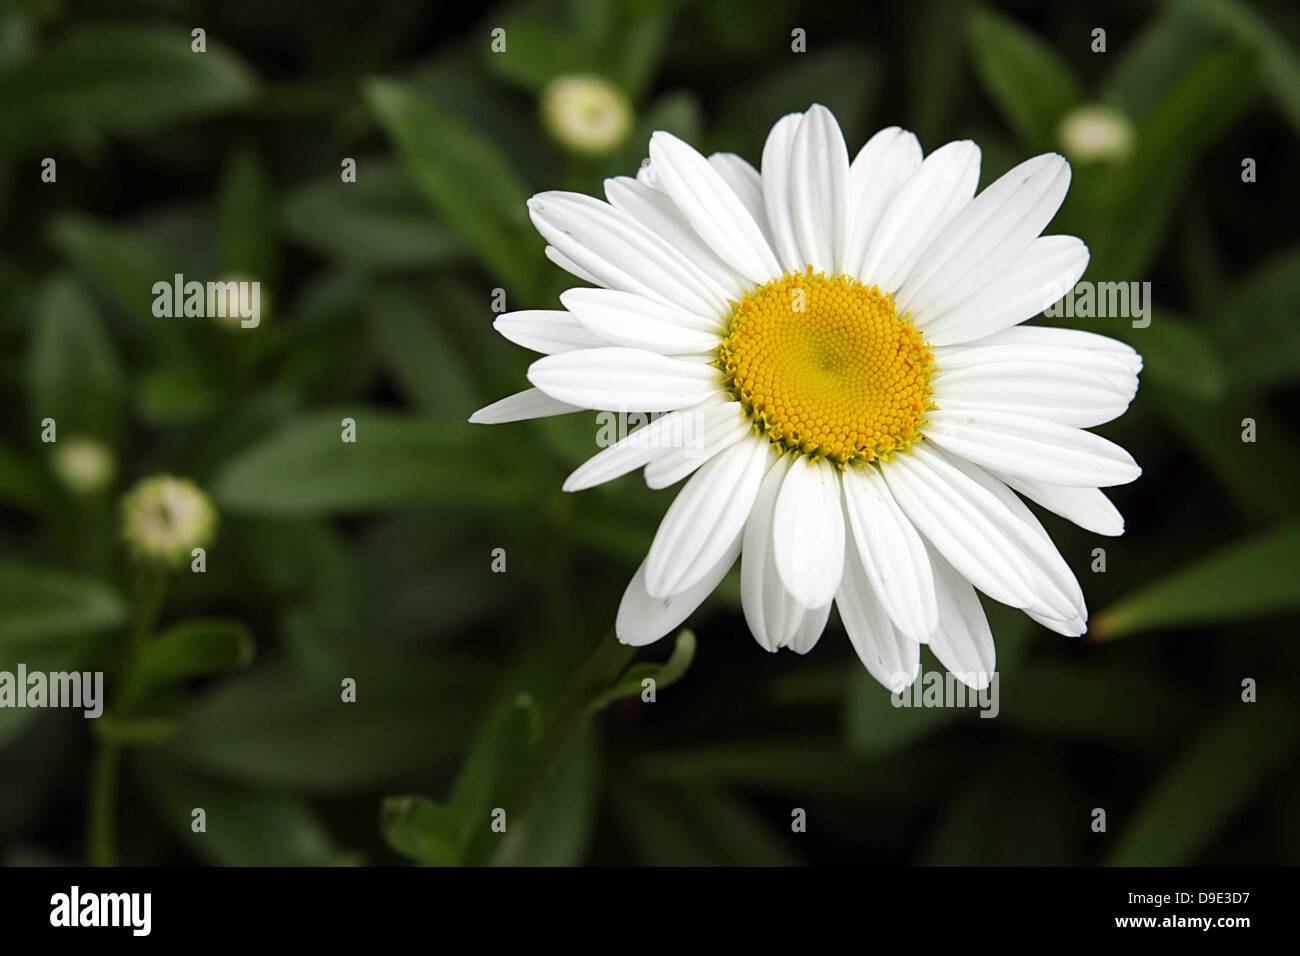 WHITE AND YELLOW DAISY FLOWER IN GREEN GARDEN - Stock Image